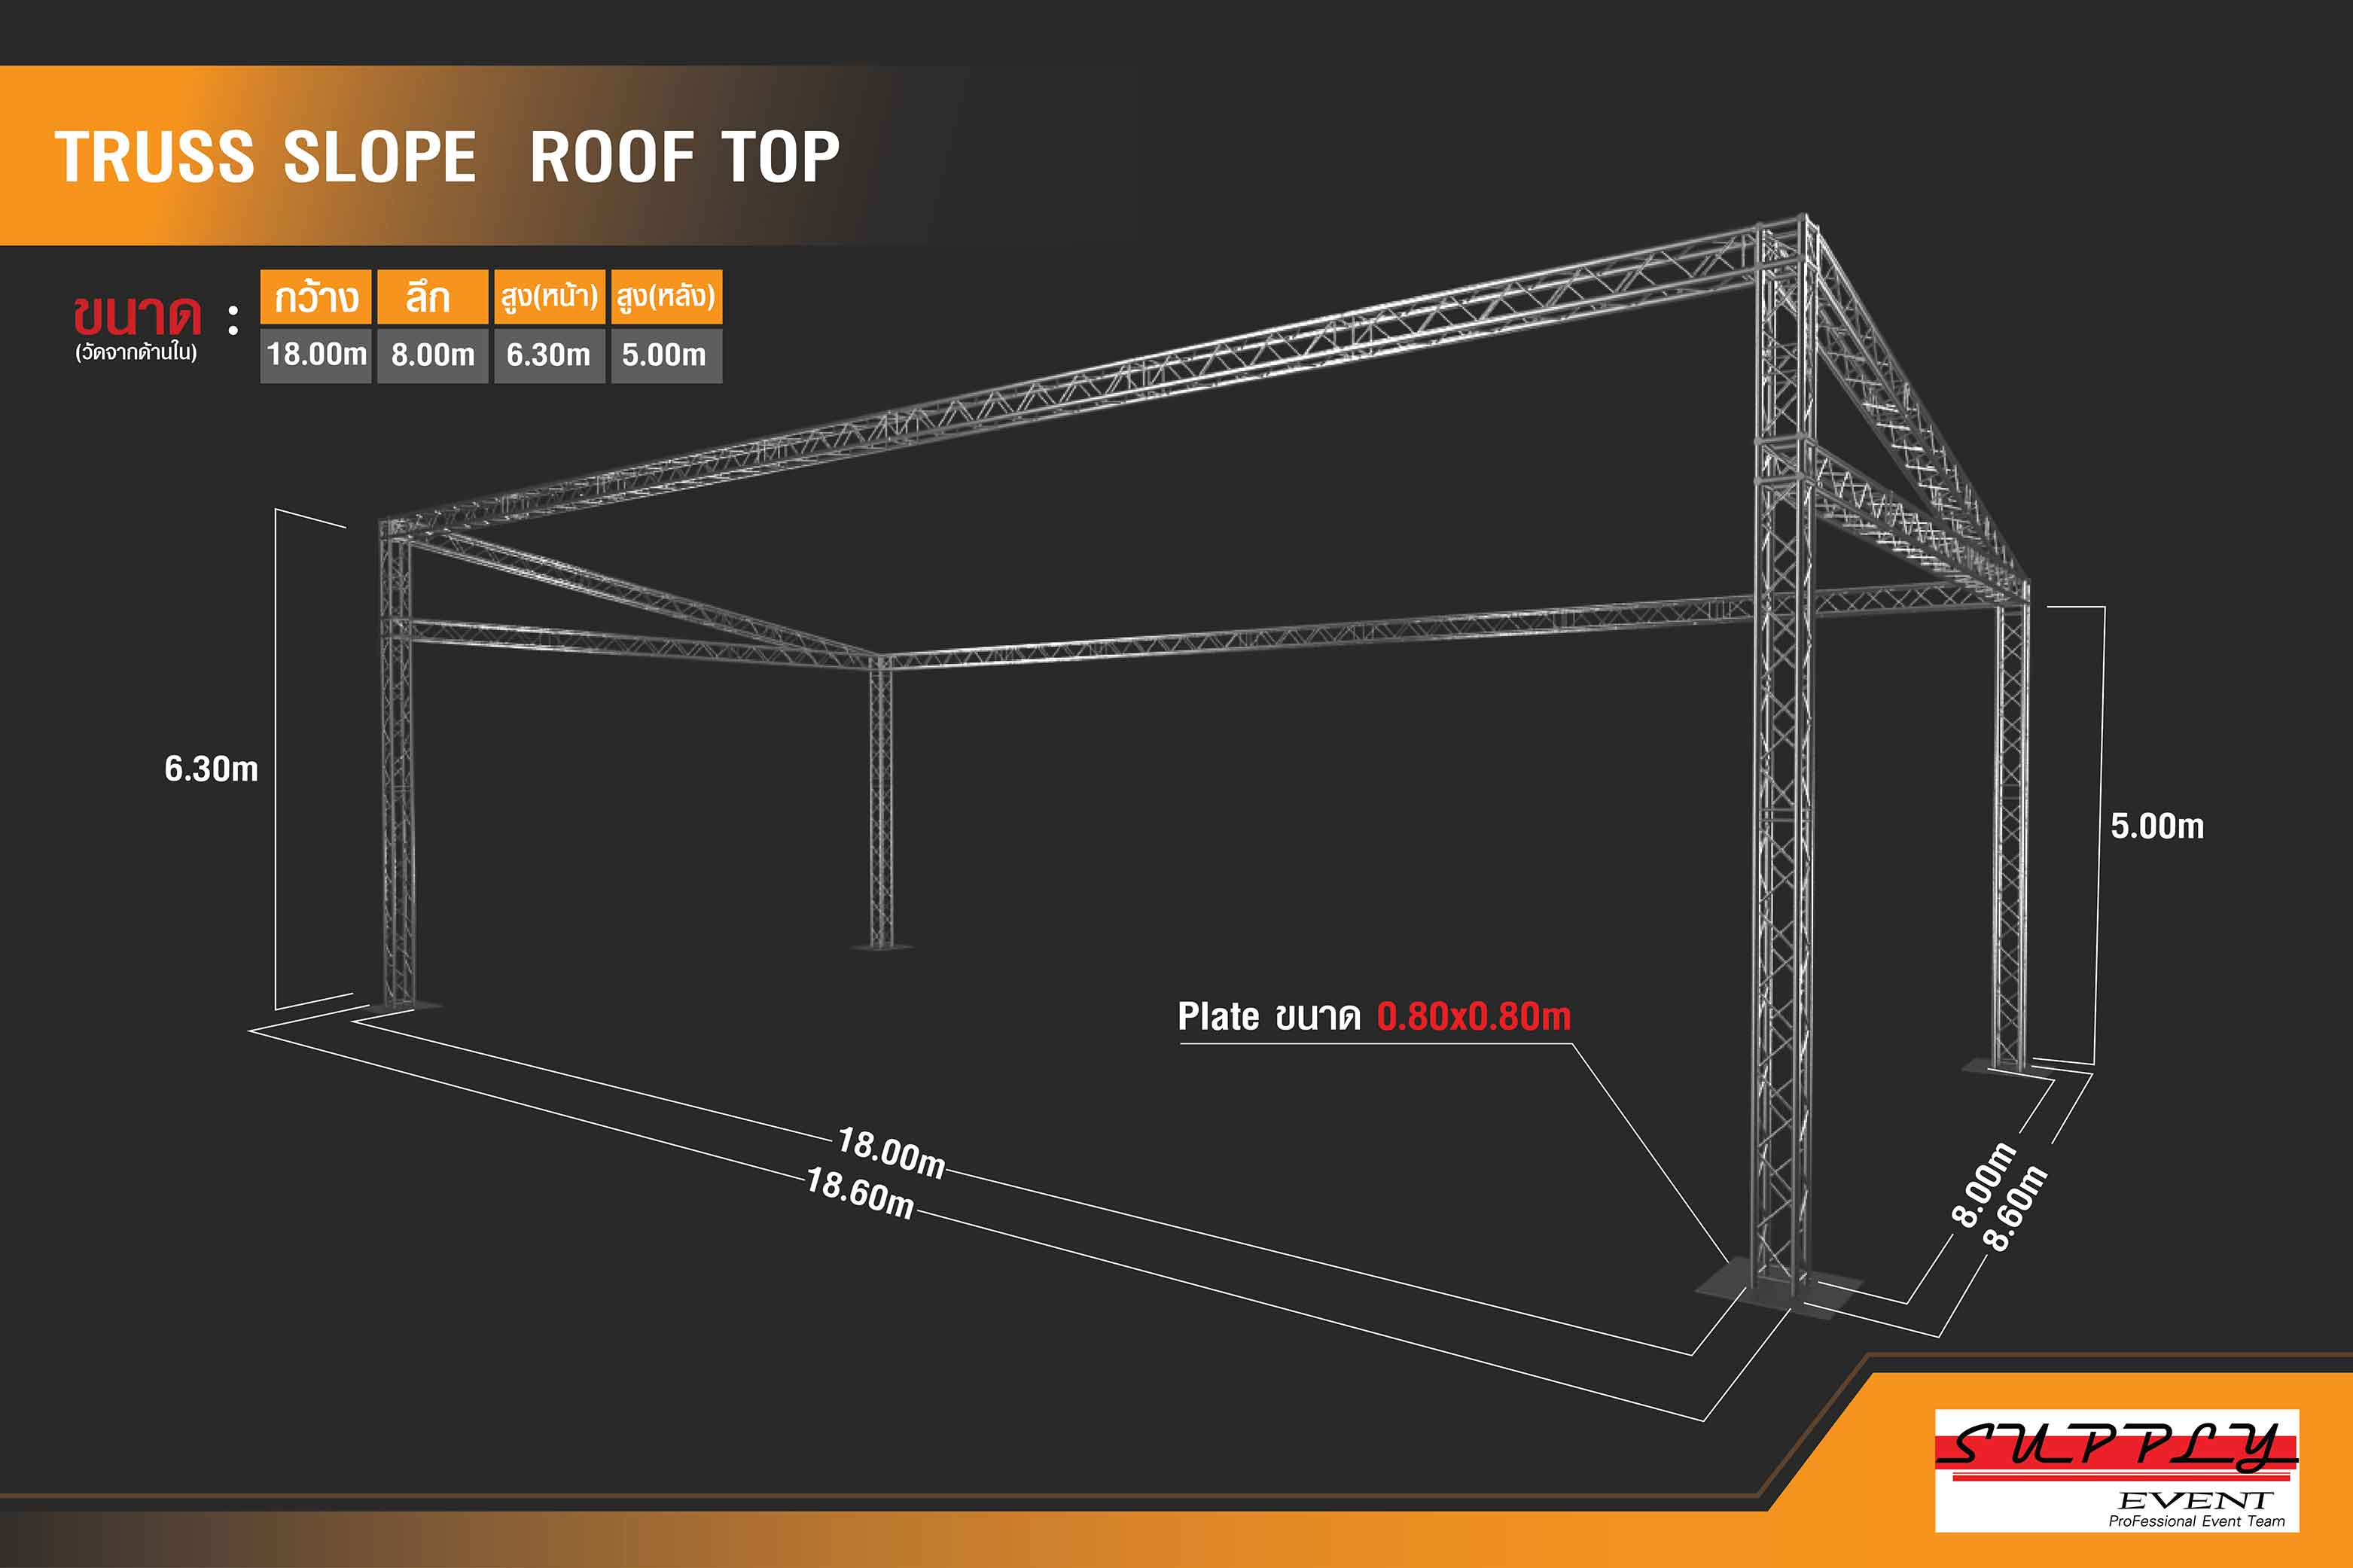 Truss slope roof top